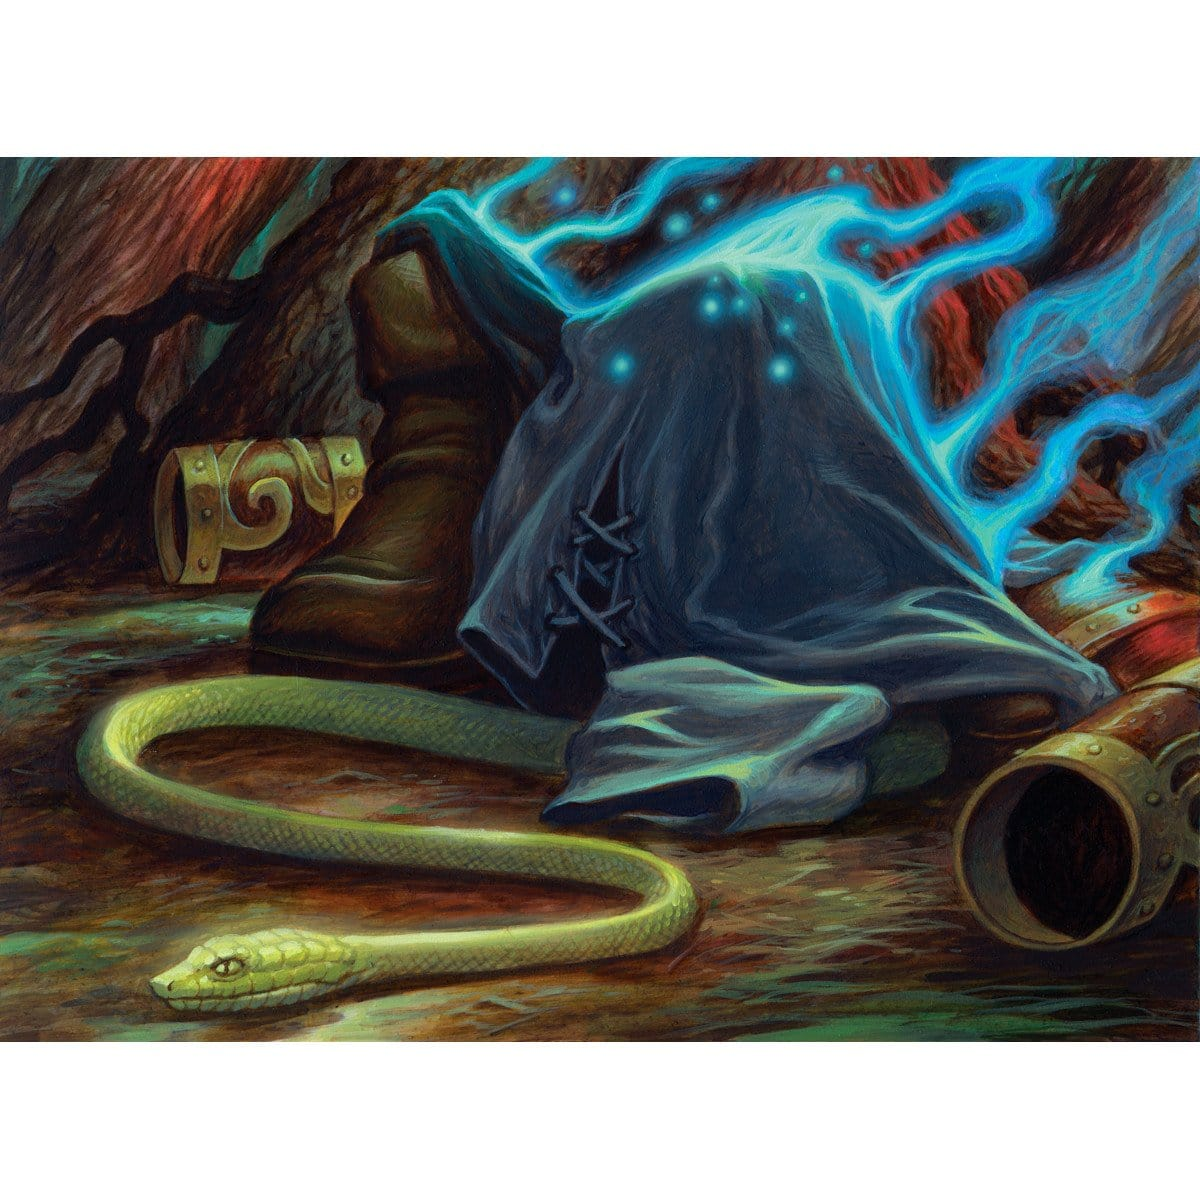 Snakeform Print - Print - Original Magic Art - Accessories for Magic the Gathering and other card games